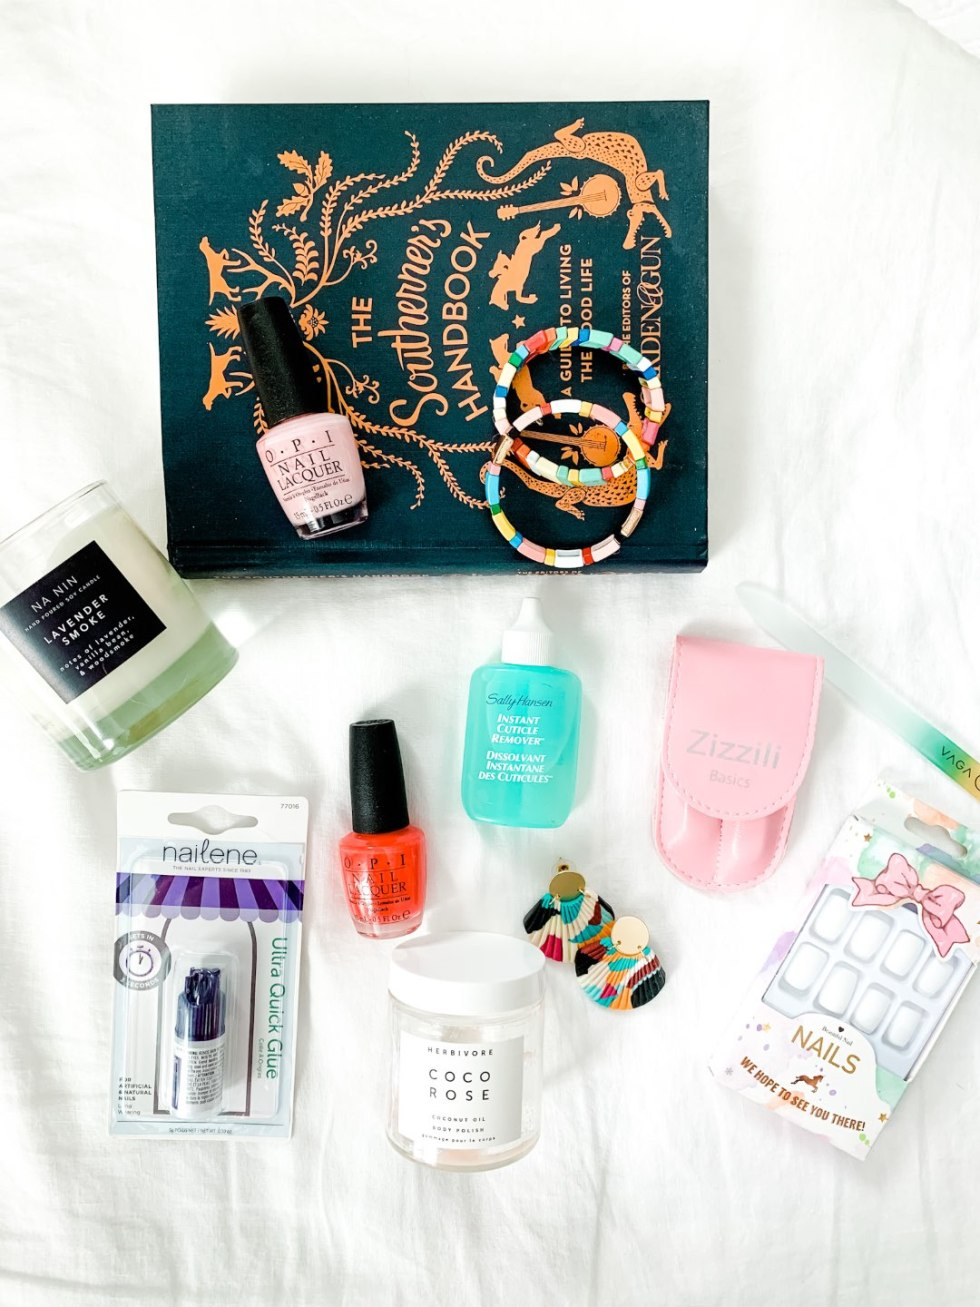 How to Master the Perfect Manicure at Home - I'm Fixin' To - @mbg0112 |  Home Manicure Essentials by popular NC beauty blog, I'm Fixin' To: image of OPI nail polish, fake nails, naileen ultra quick glue earrings, Sally Hassen Instant Cuticle Remover, Herbivore Coco Rose coconut oil body polish, multi color stretch bracelets, Retinol anti-aging hand treatment, and Burt's Bees foot cream.